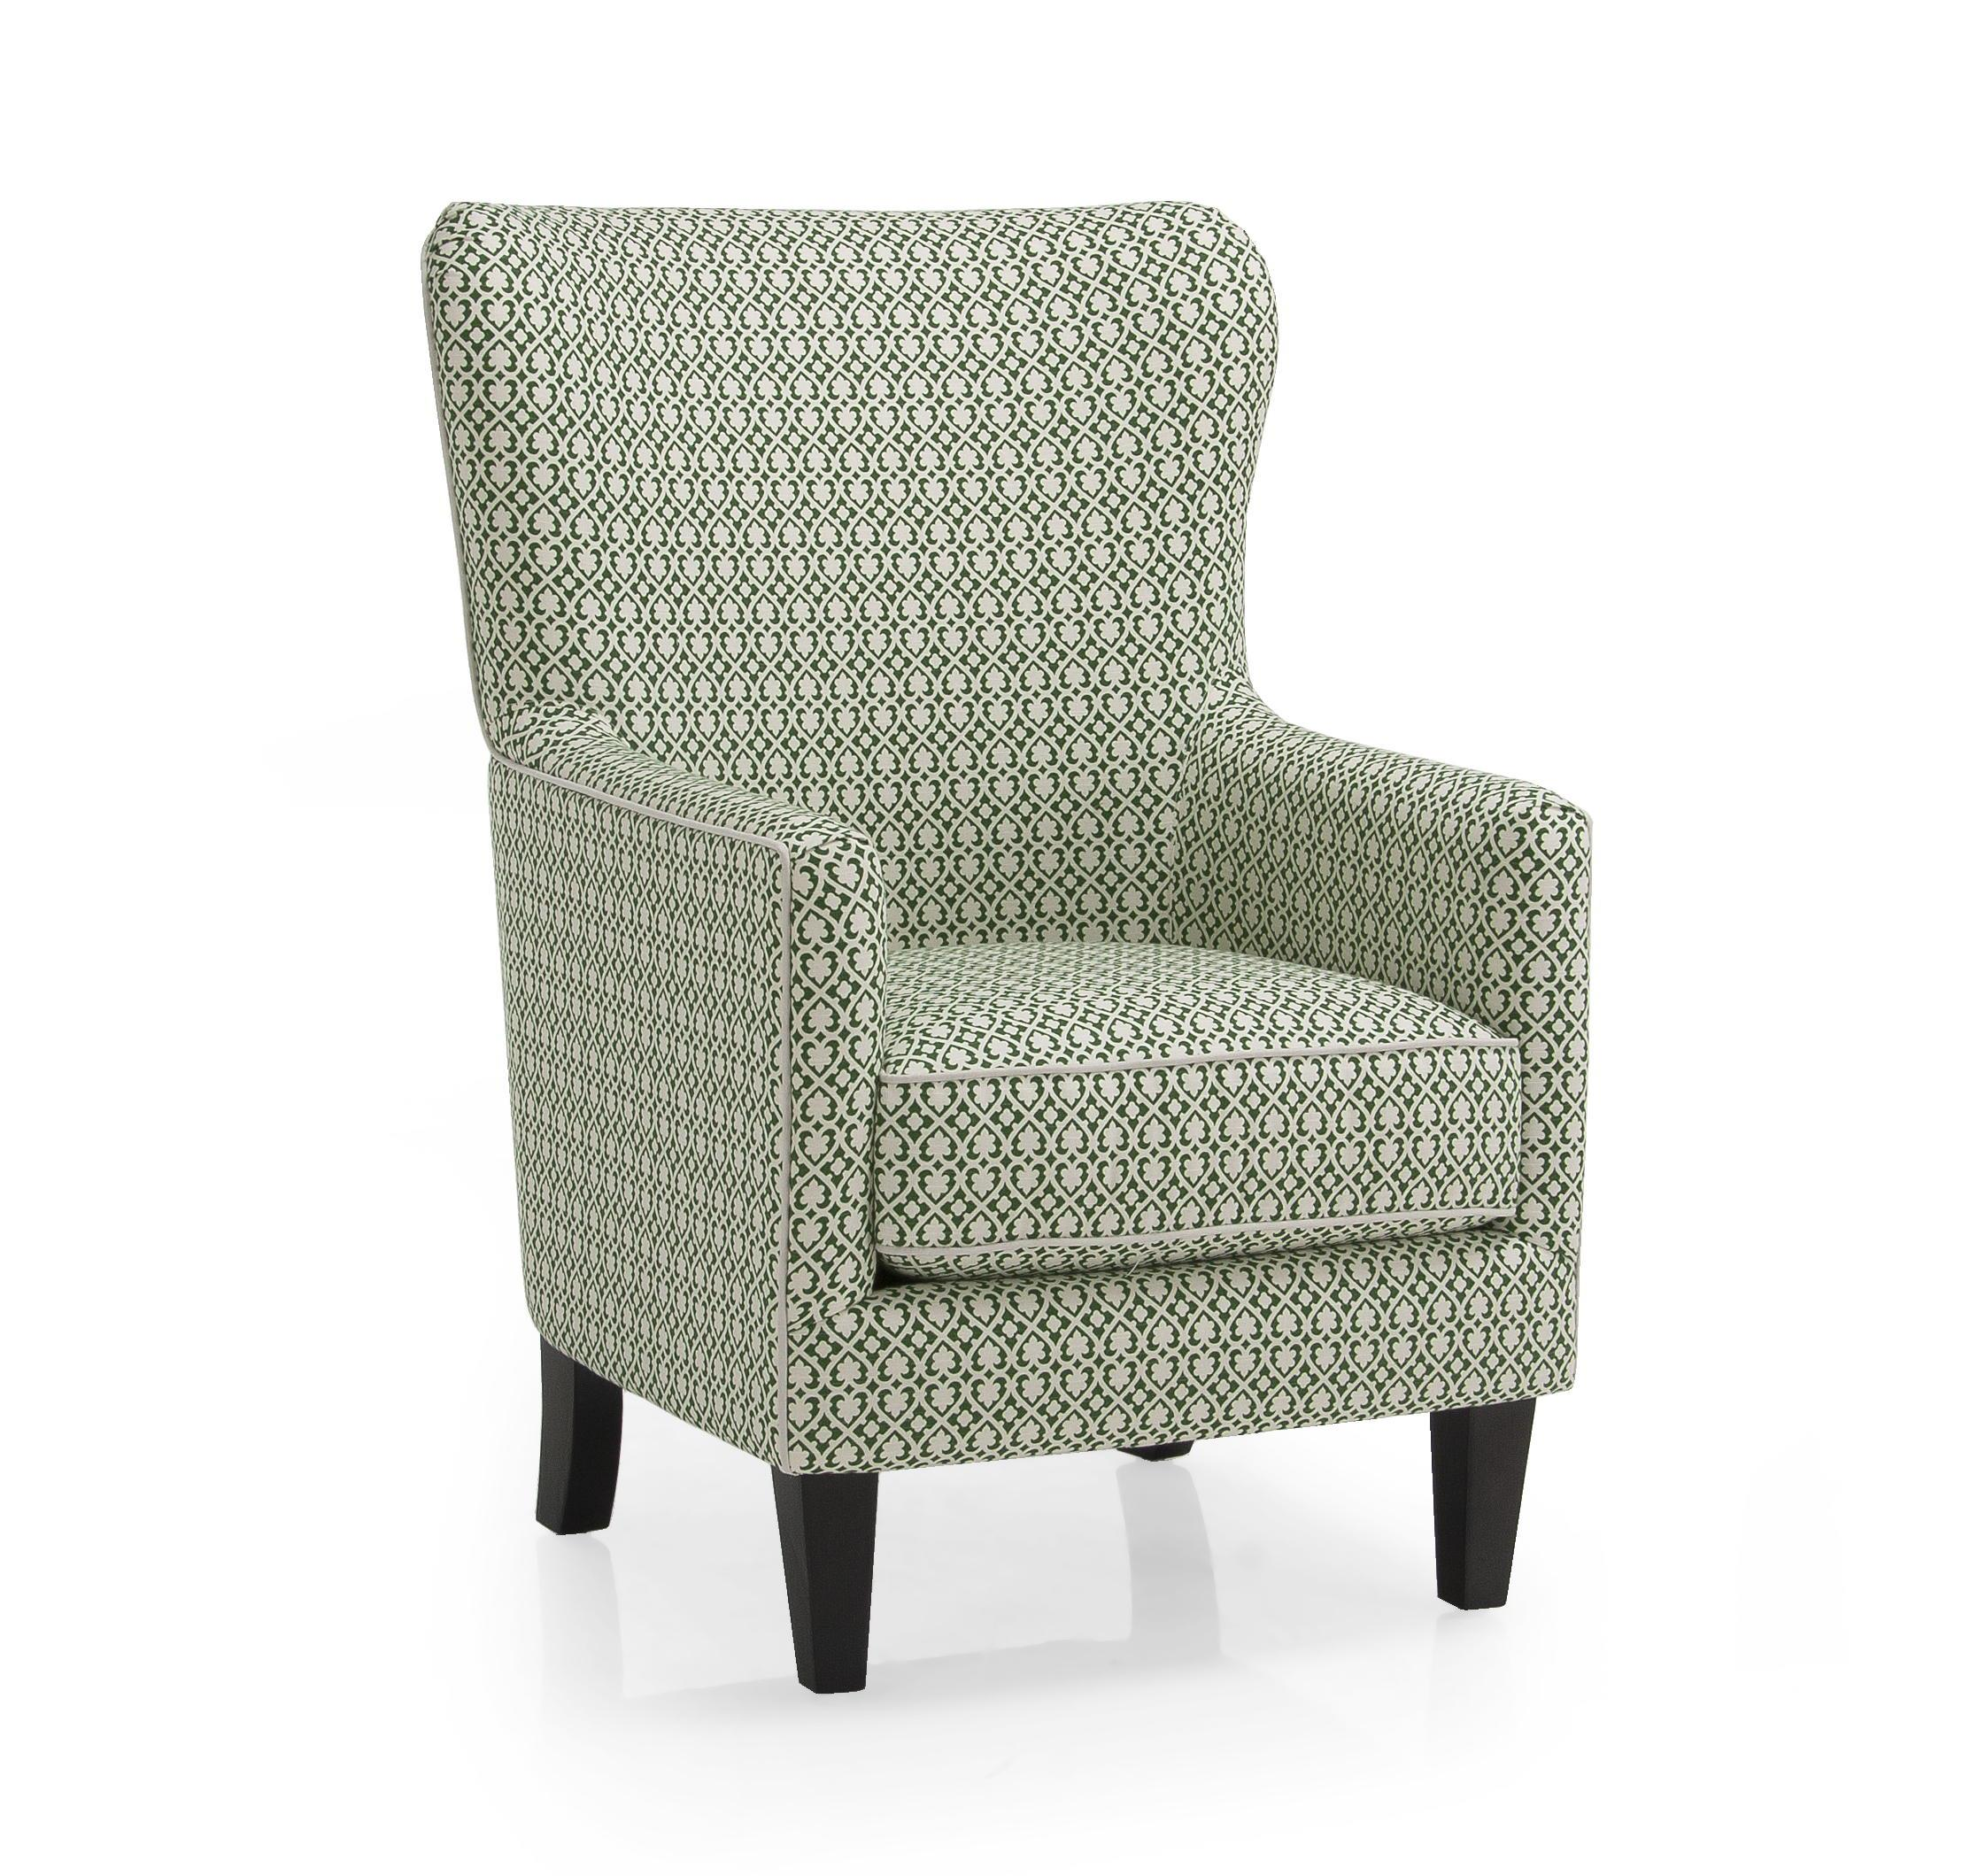 2379 Contemporary Wing Back Chair by Decor-Rest at Rooms for Less